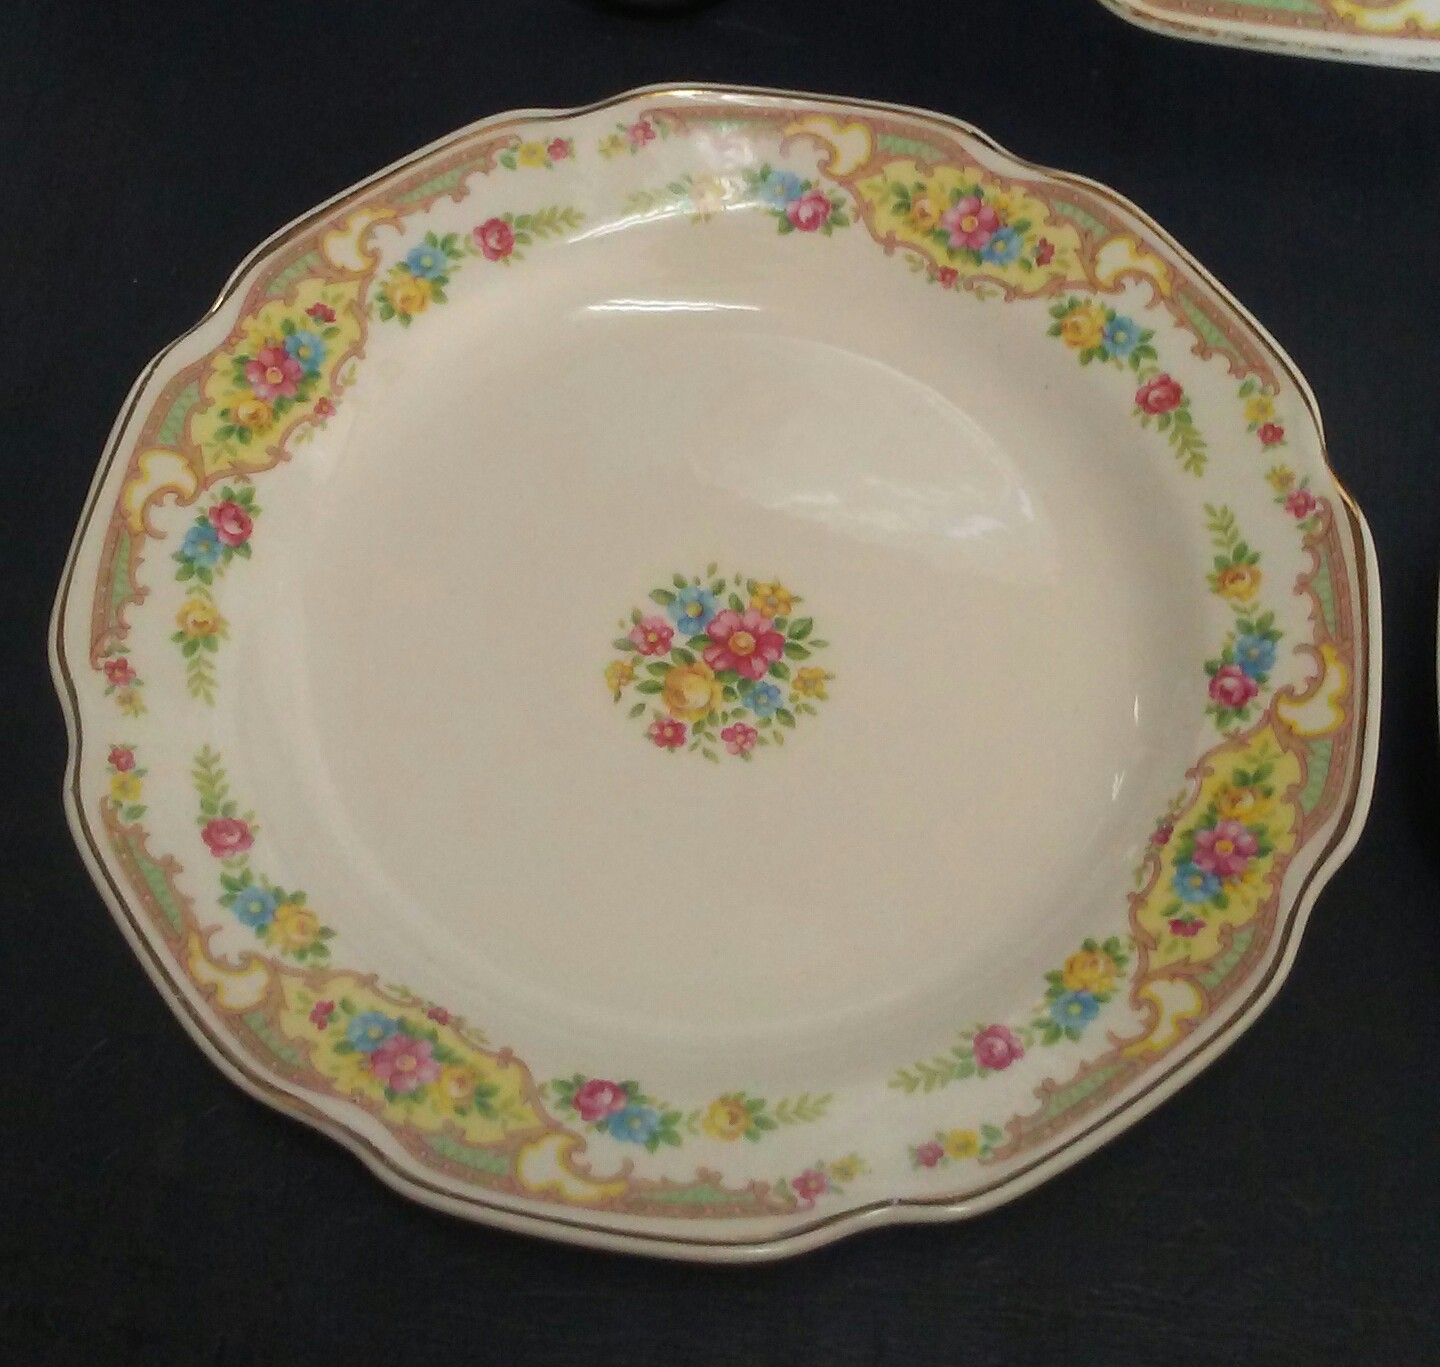 Vintage Mt Clemens plate set. These cream china plates have a lovely tiny floral design and gold trim on a white background and a lovely scalloped edge. & Floral Plate set White china Mt Clemens China China Plates China ...